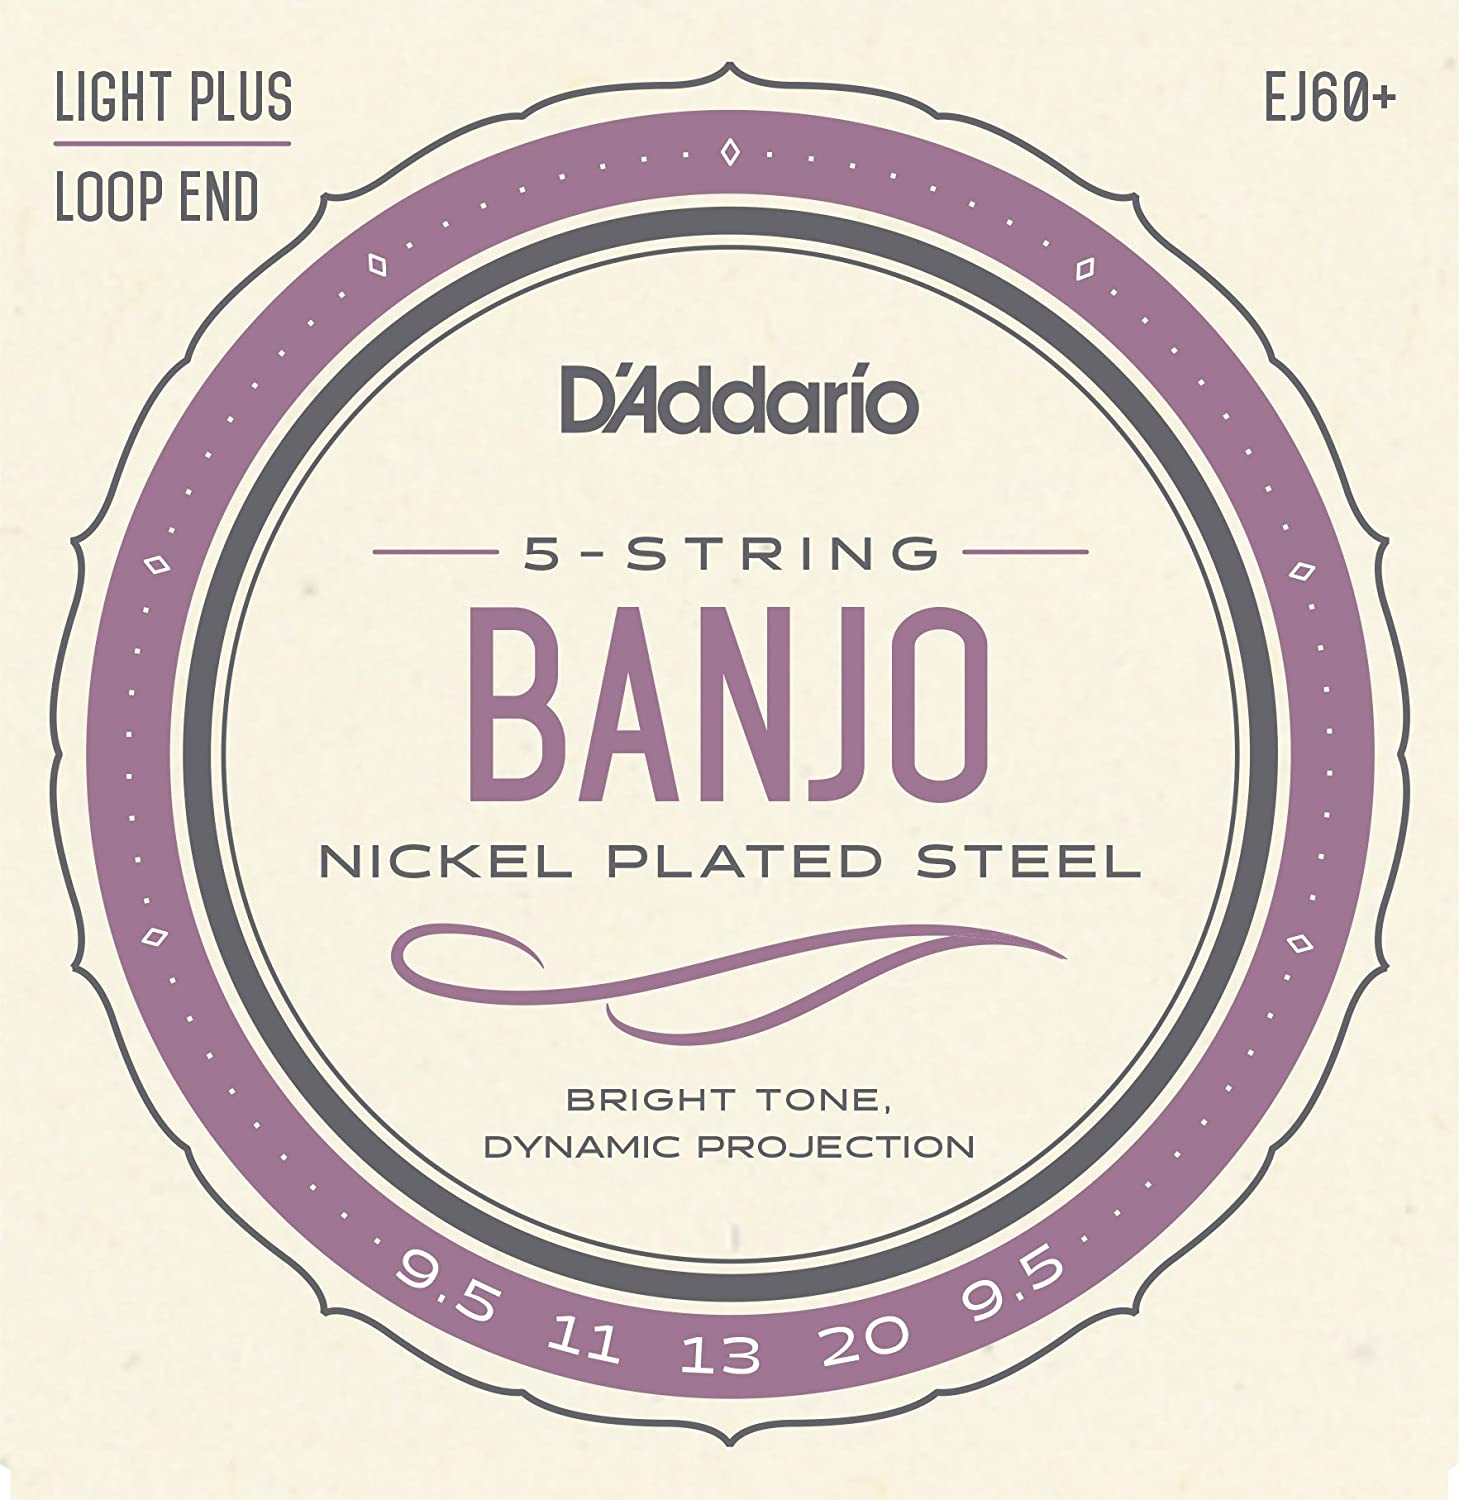 D'Addario EJ60+ Nickel 5-String Banjo Strings, Light Plus, 9.5-20 D' Addario &Co. Inc